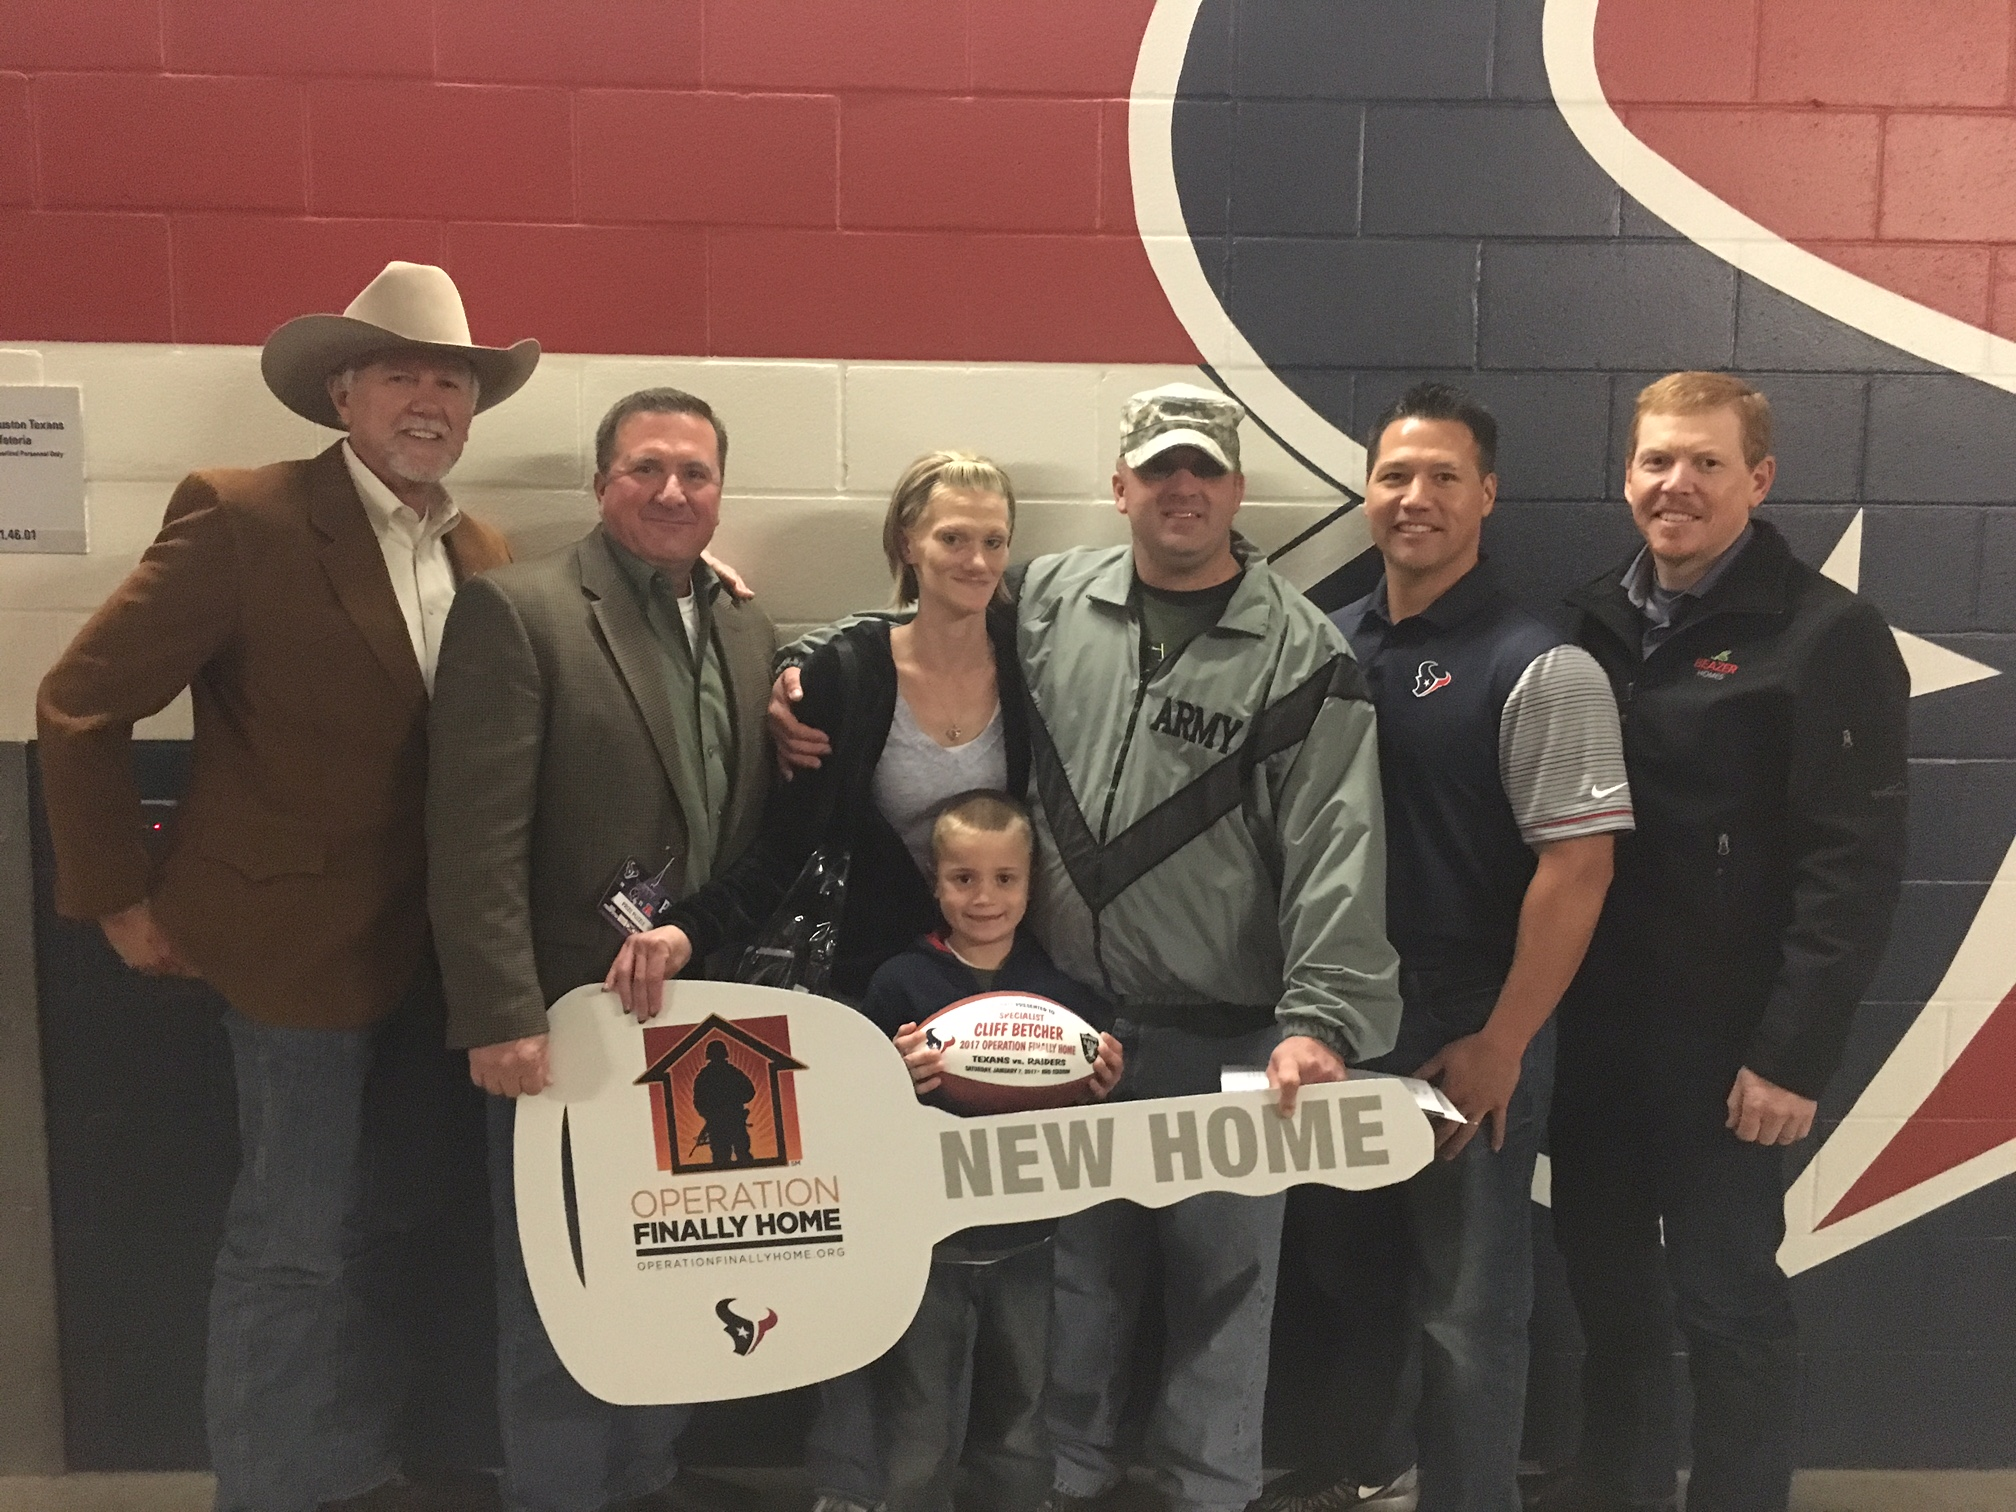 Operation finally home holds ceremony houston chronicle for Operationfinallyhome org